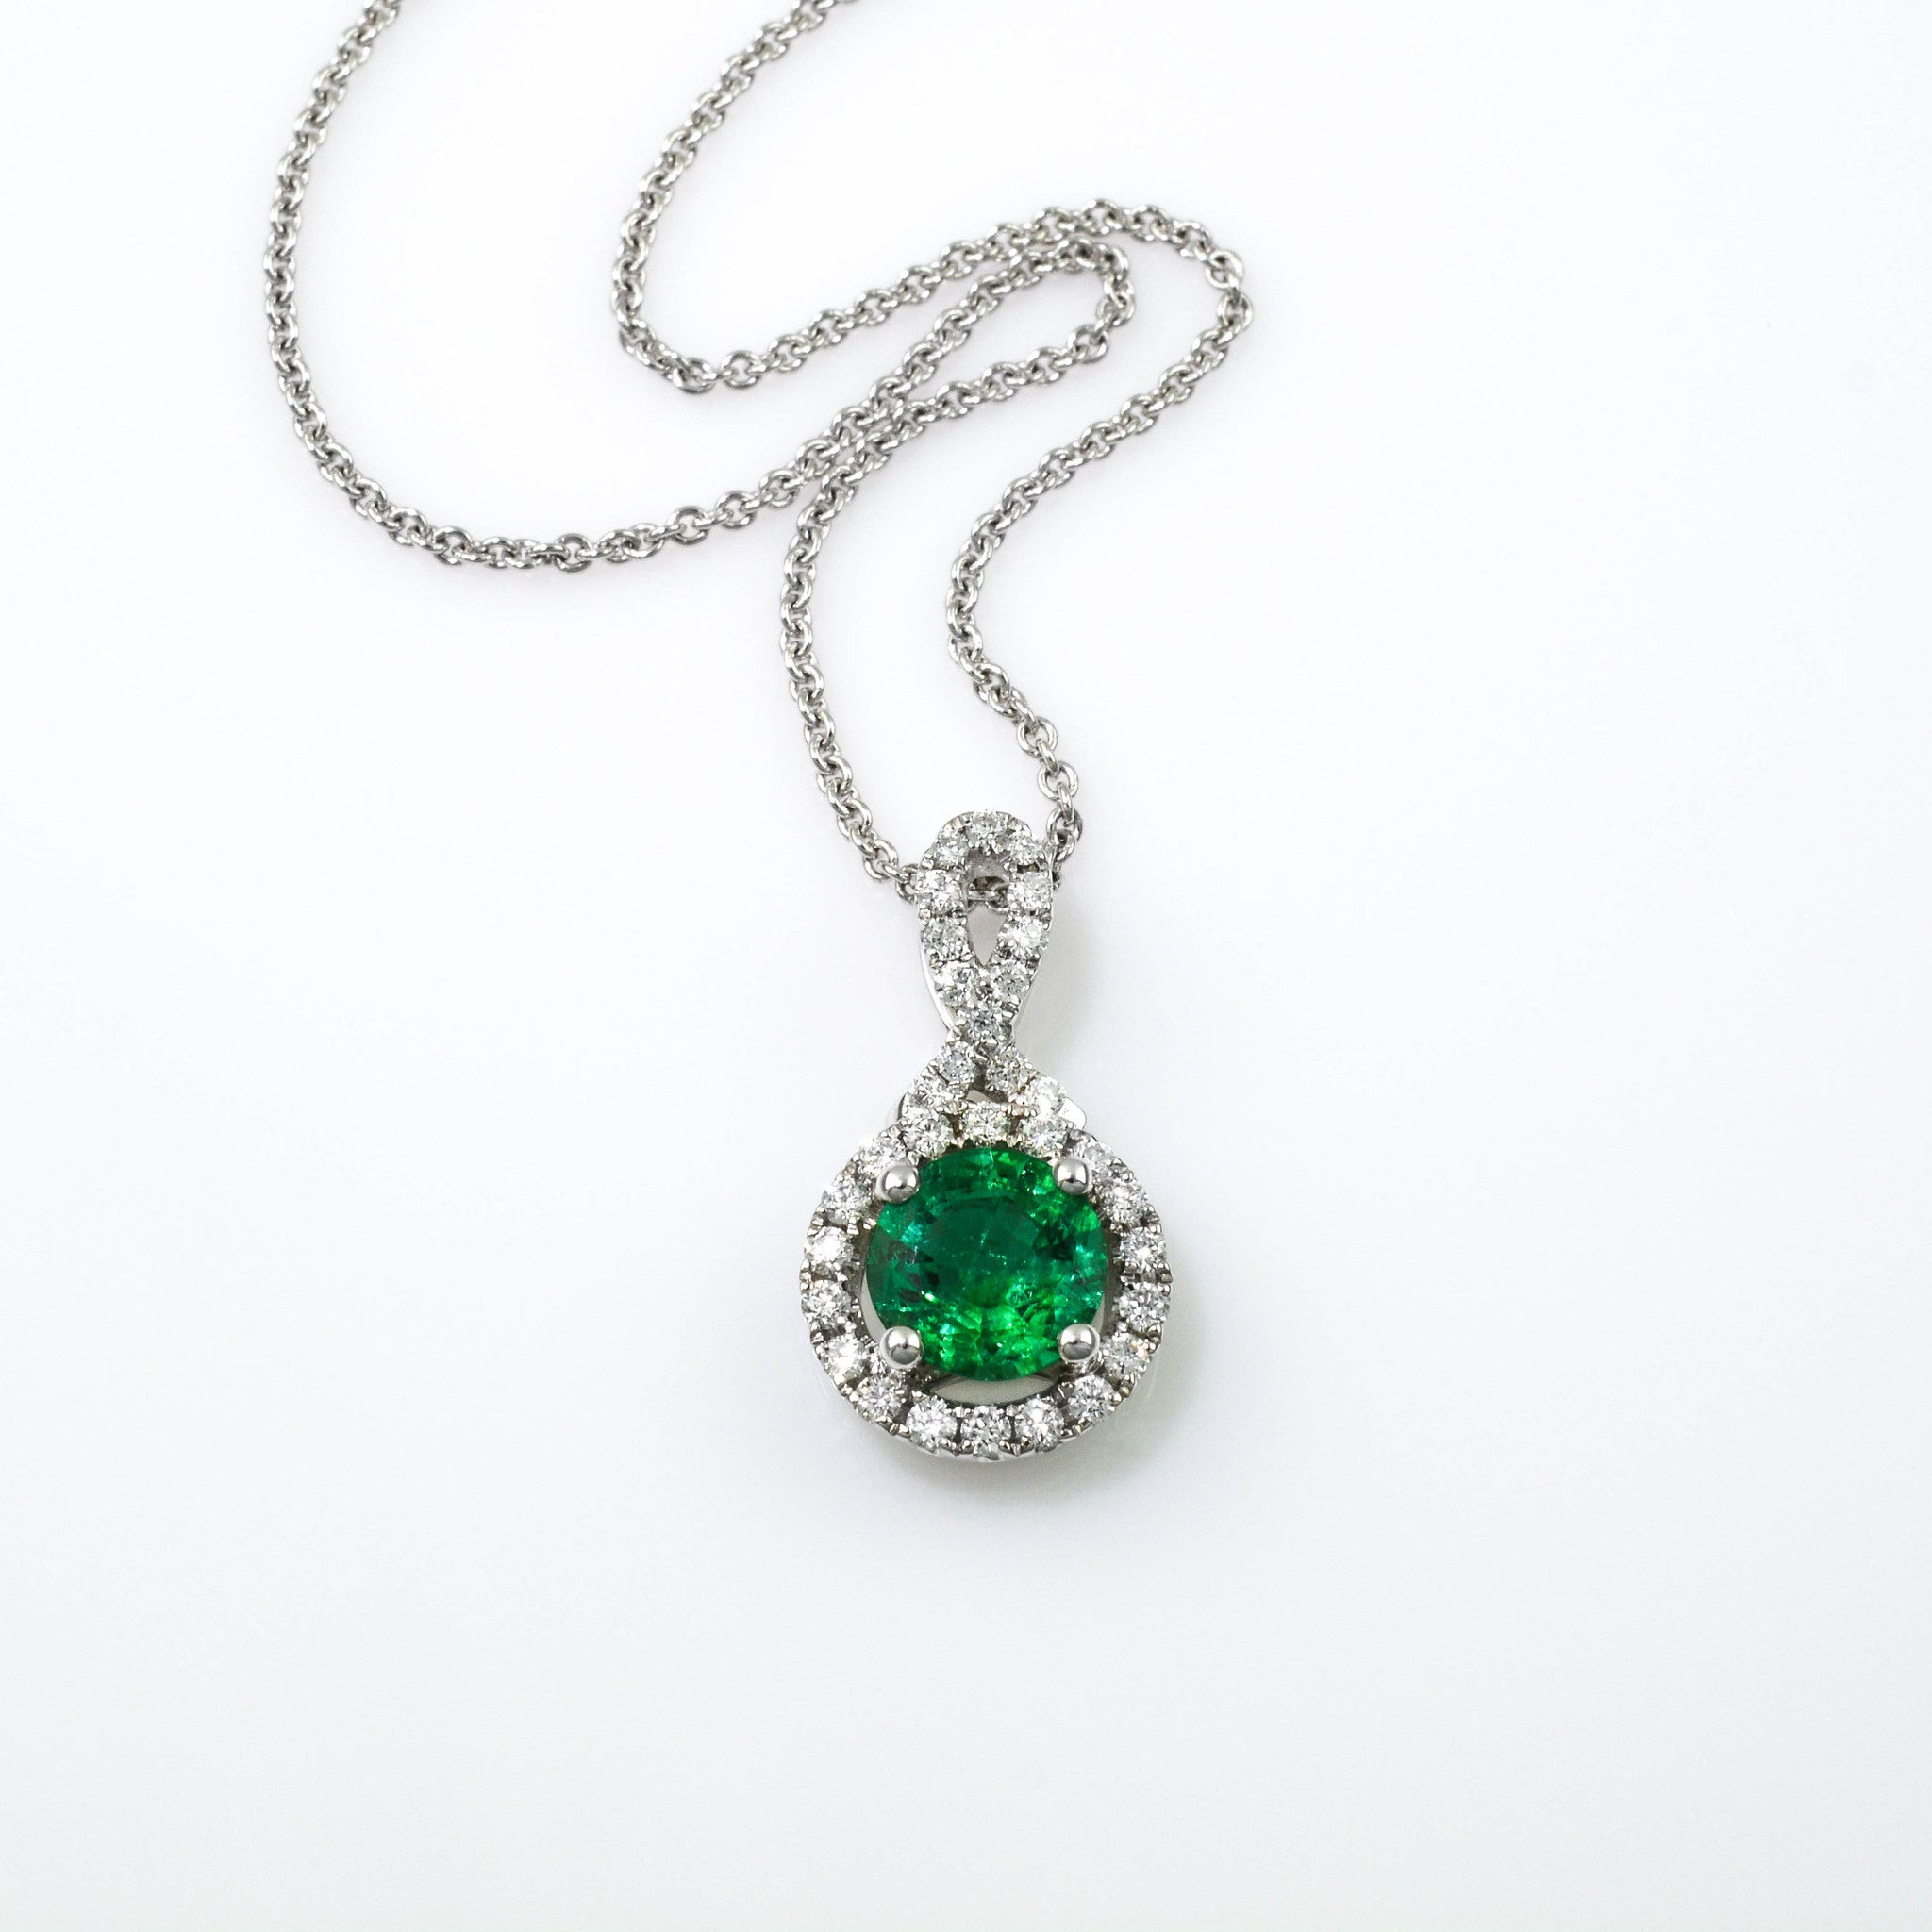 Exquisite emerald and diamond pendant plante jewelers for Plante pendante